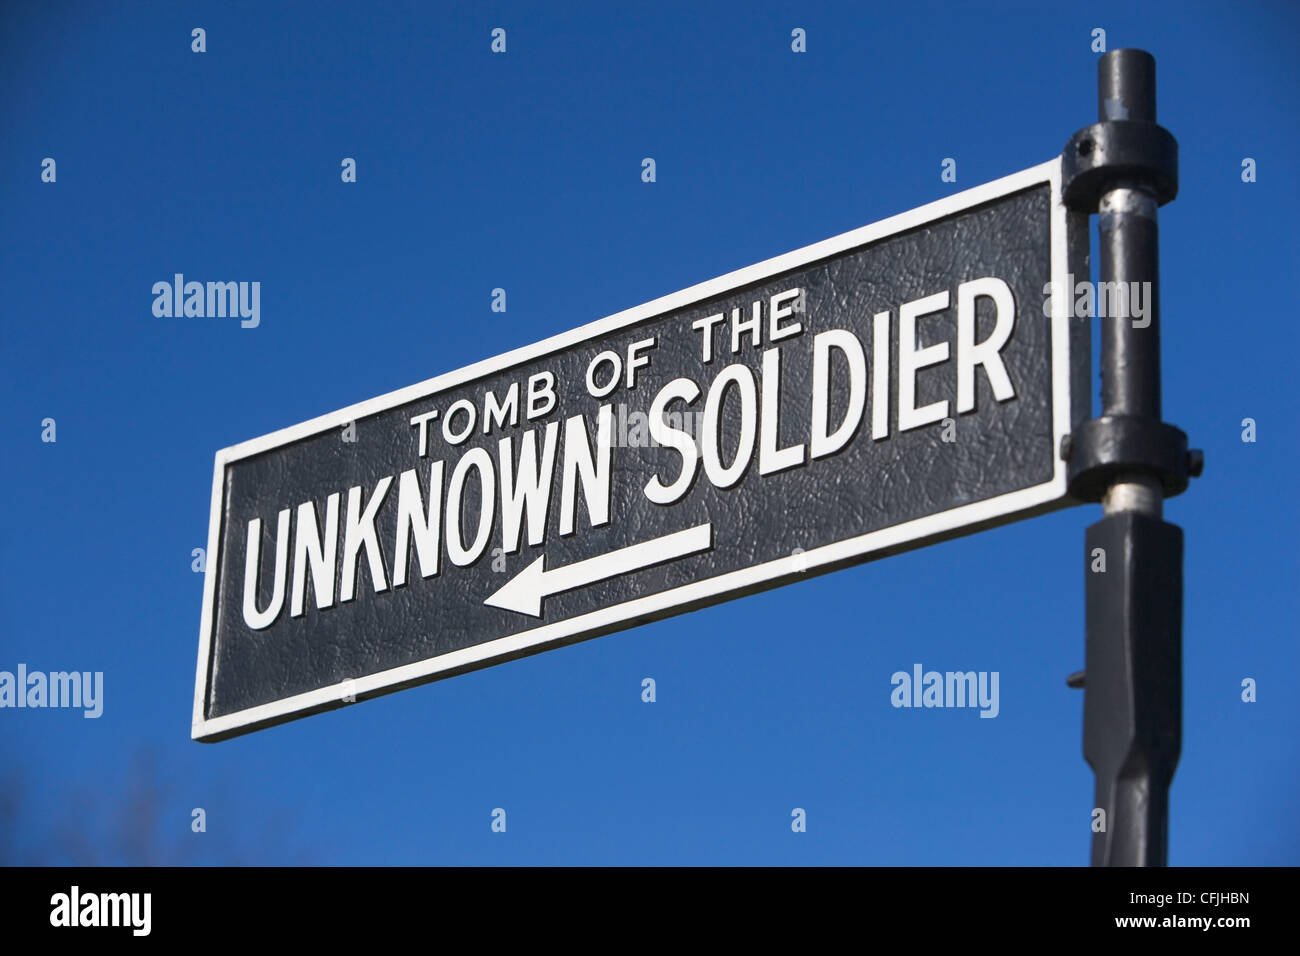 Sign for Tomb of the Unknown Soldier, Arlington National Cemetery, Virginia, USA - Stock Image